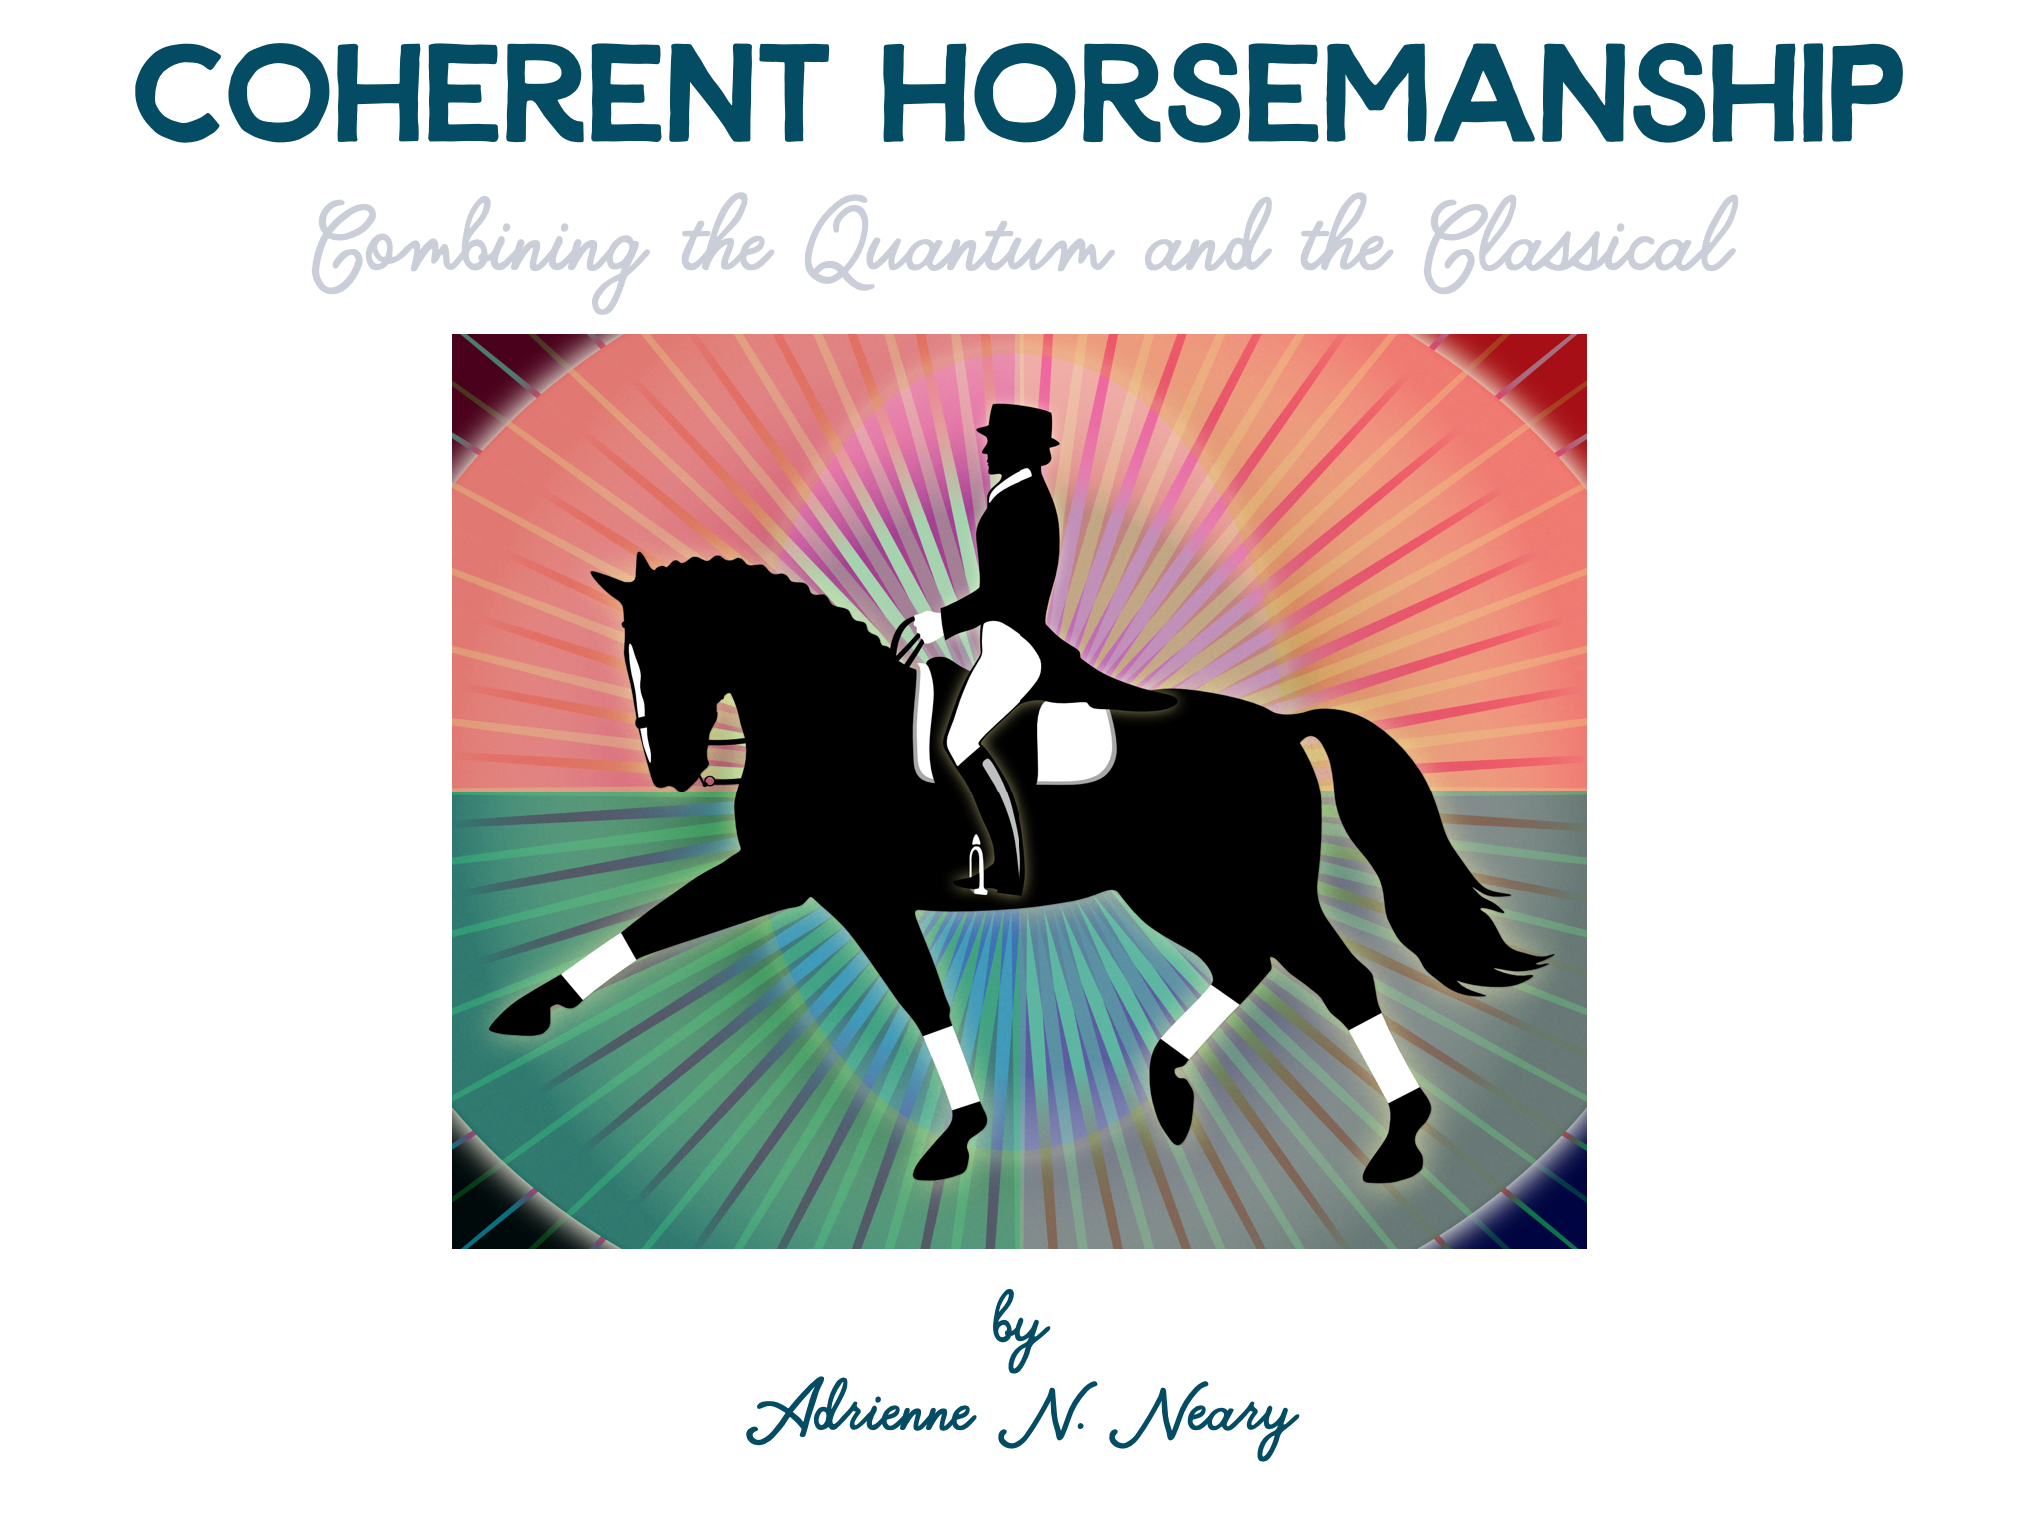 Coherent Horsemanship